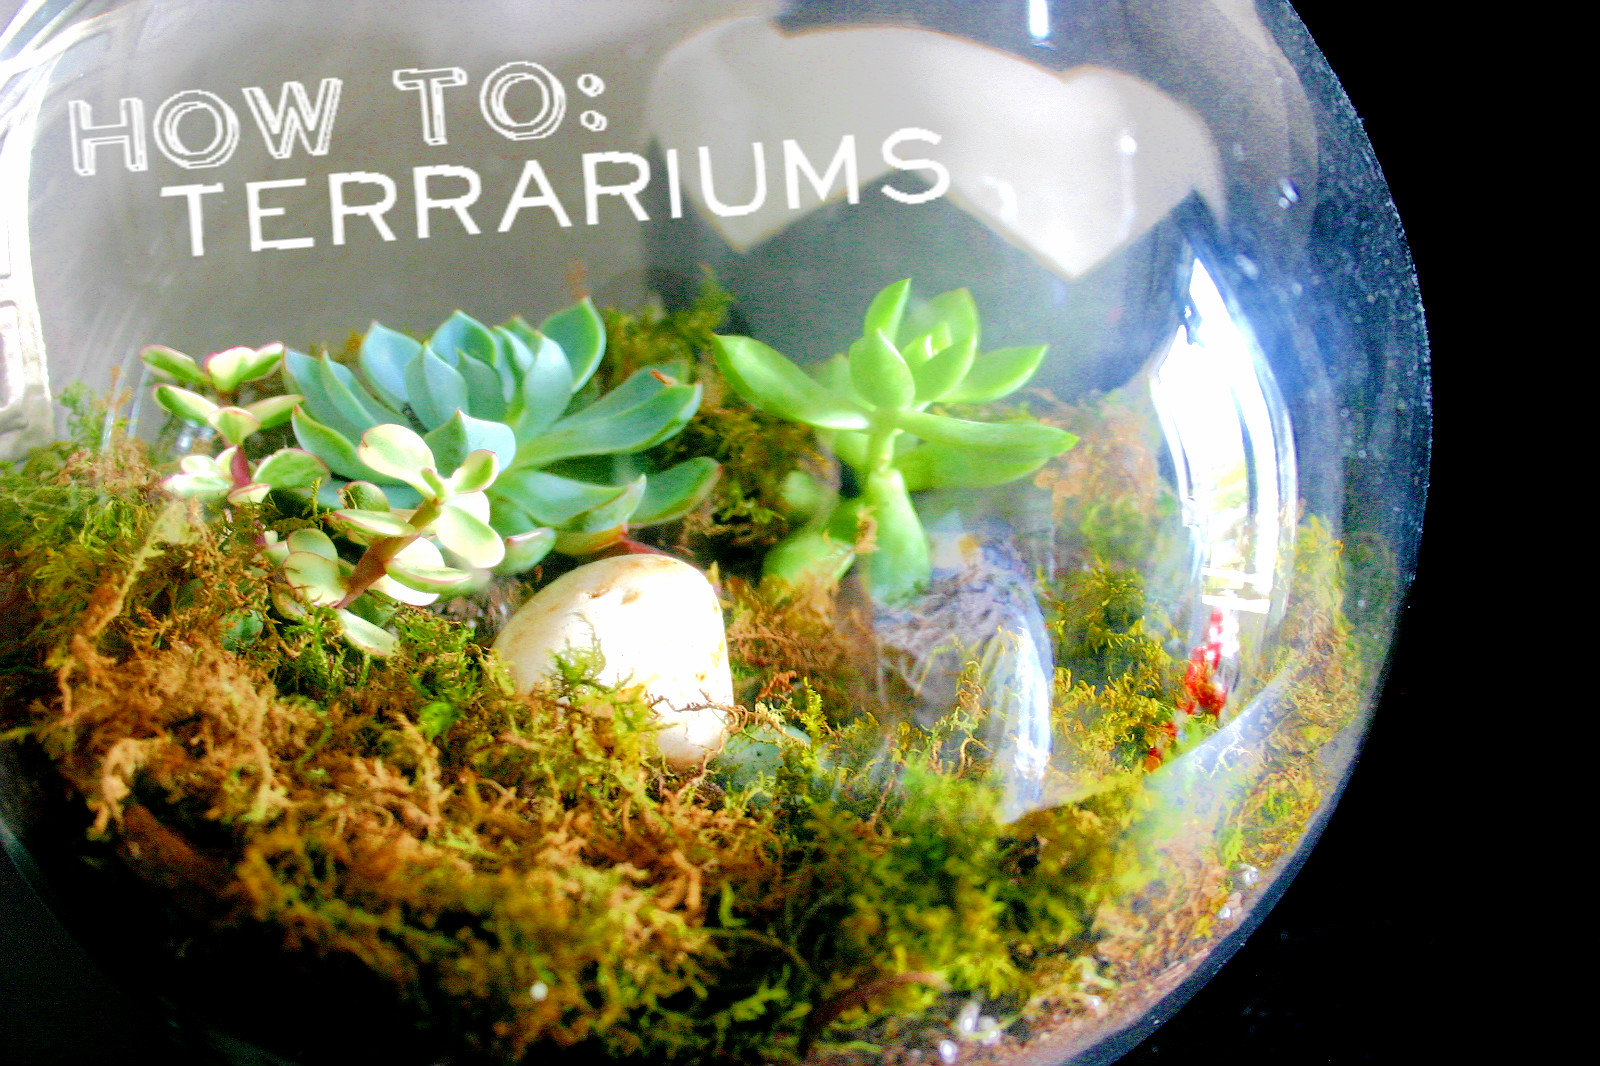 HOW TO: Build a Terrarium | Brick & Vine